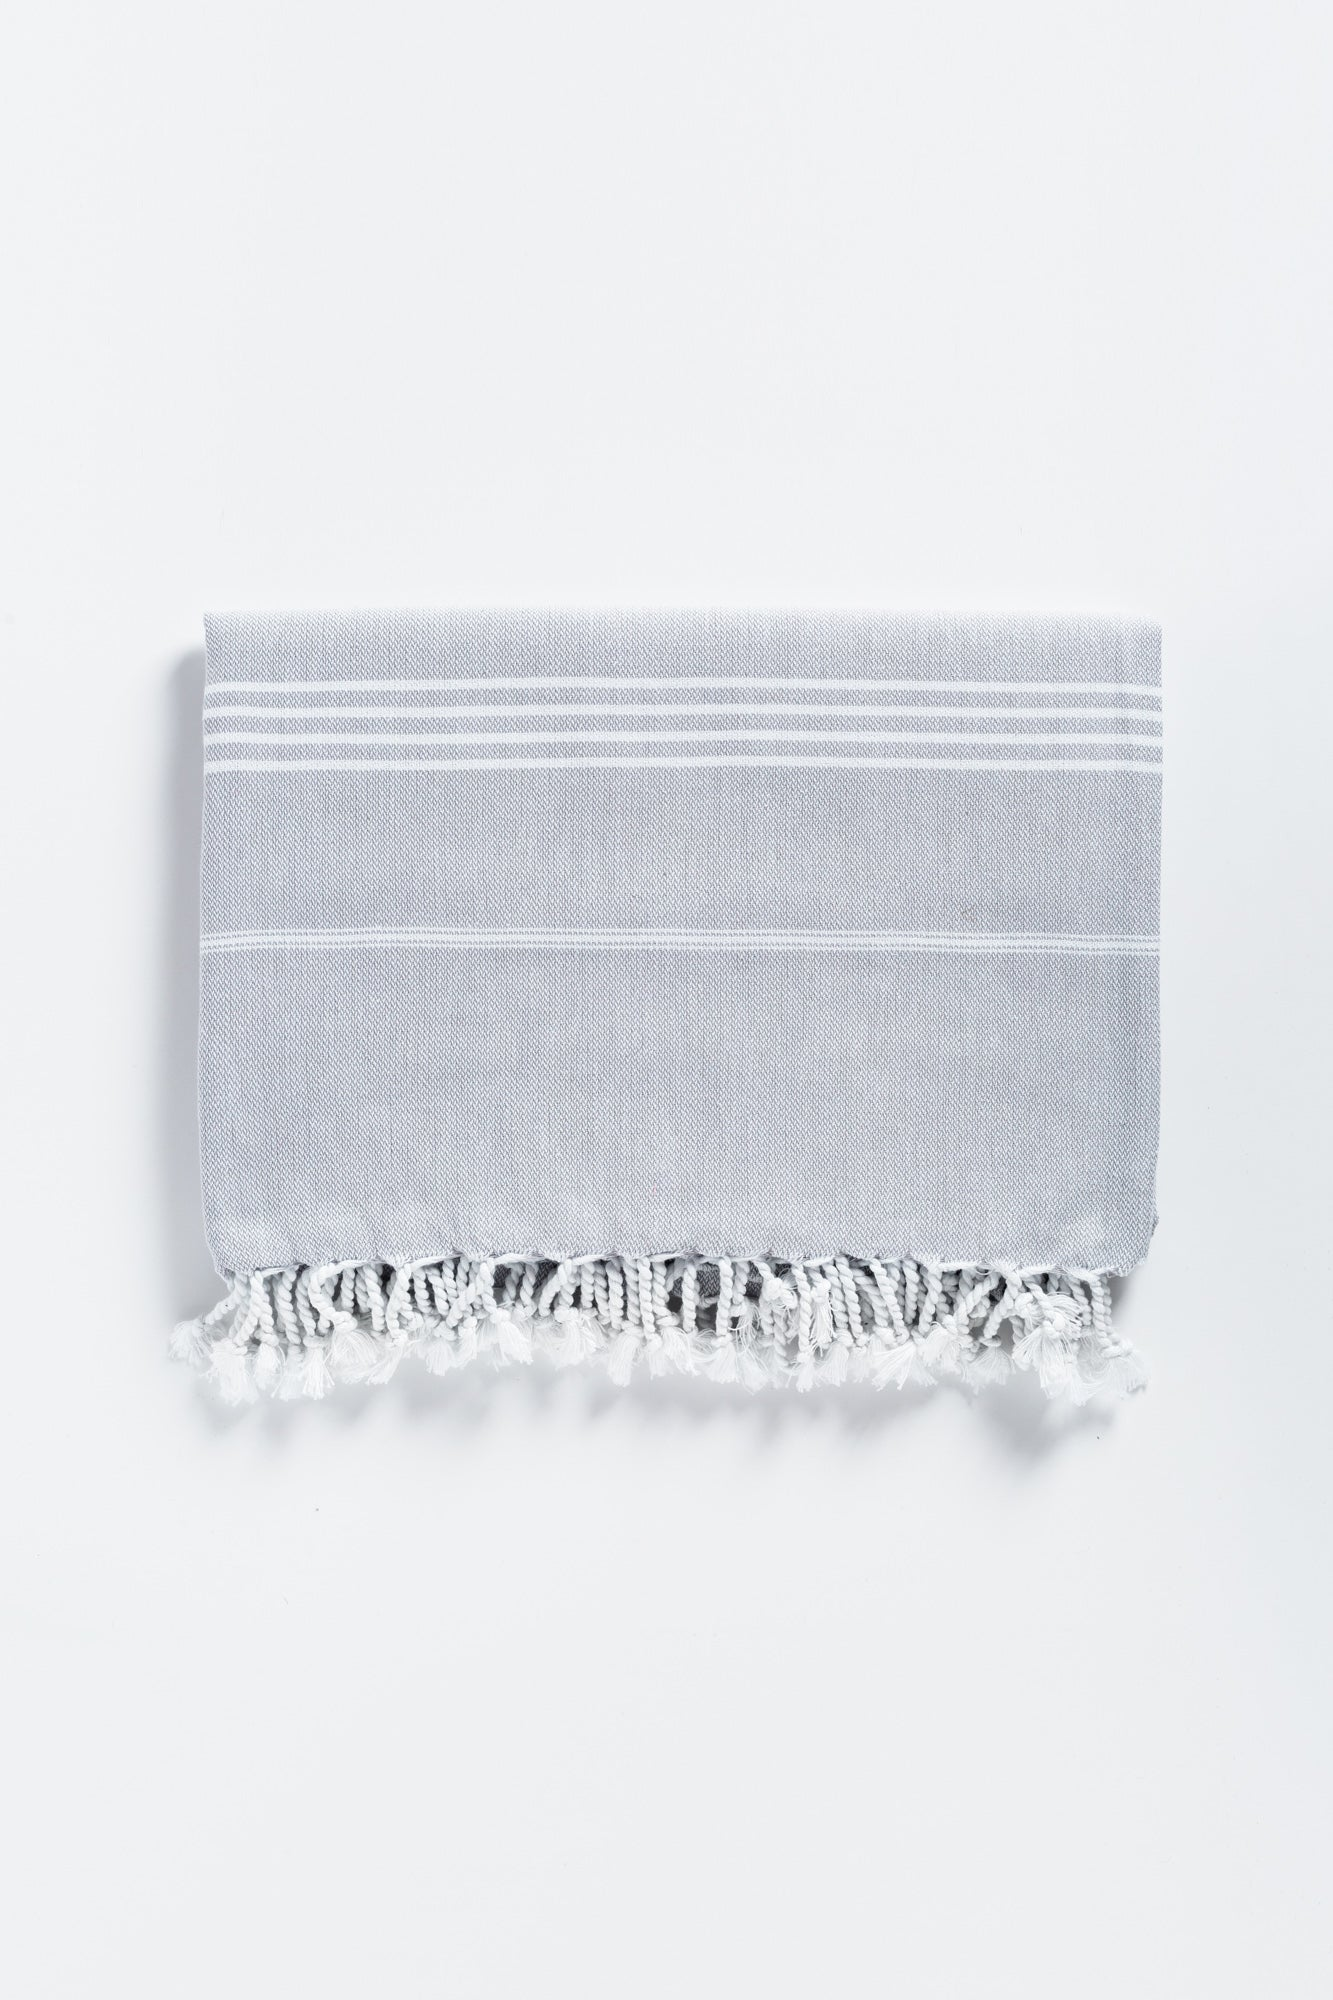 Oversized Basic Gray Turkish Towel - Beach Towel for Two